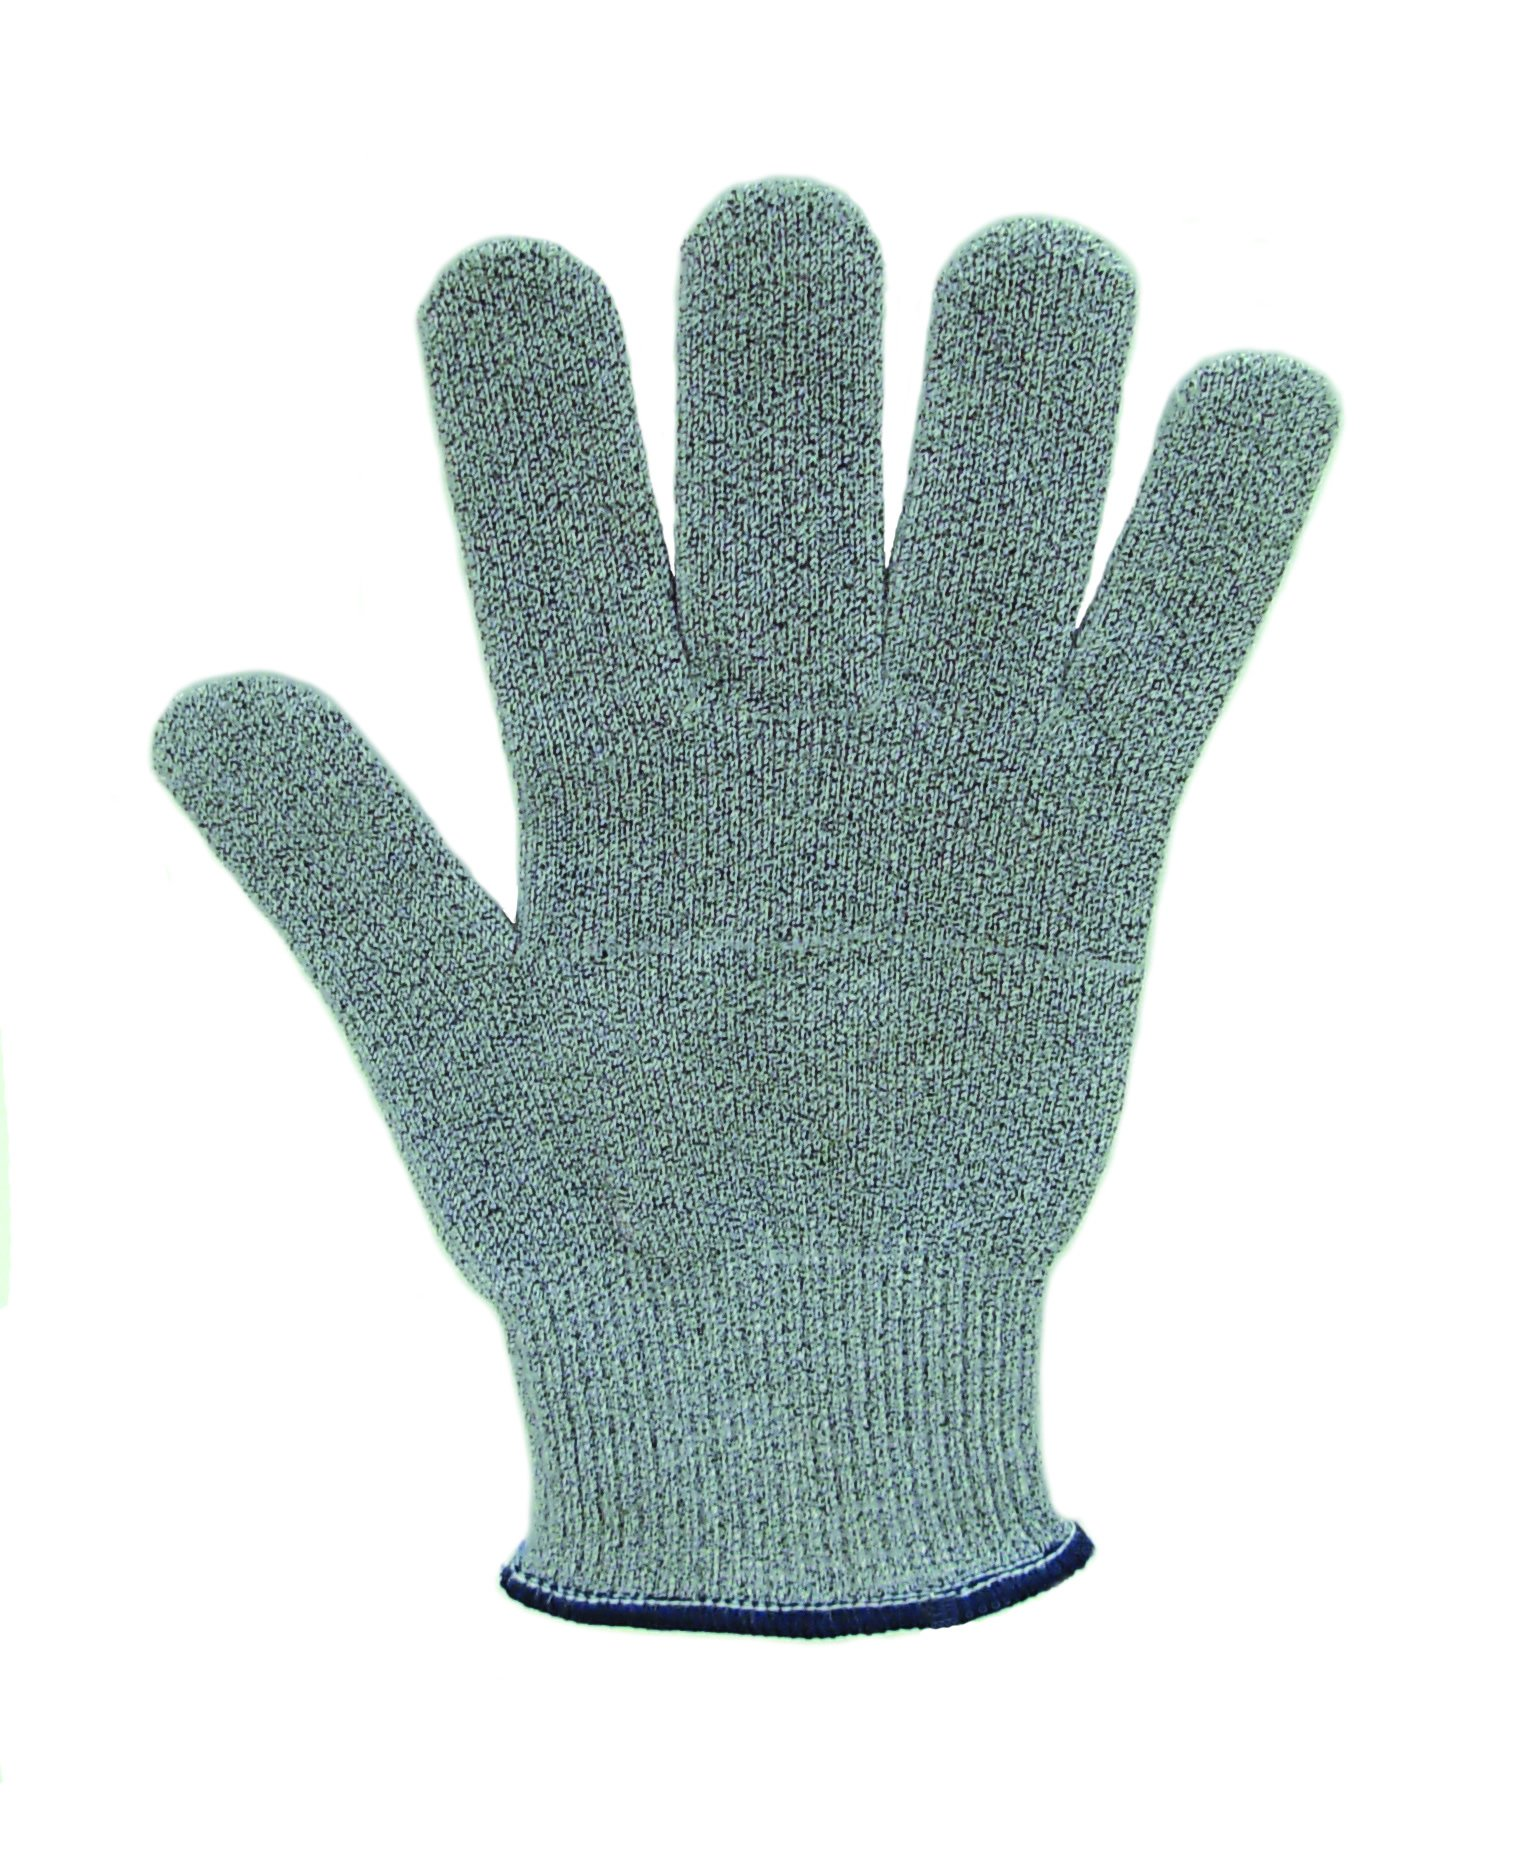 Microplane Cut Resistant Glove Keep Hands Safe in the Kitchen